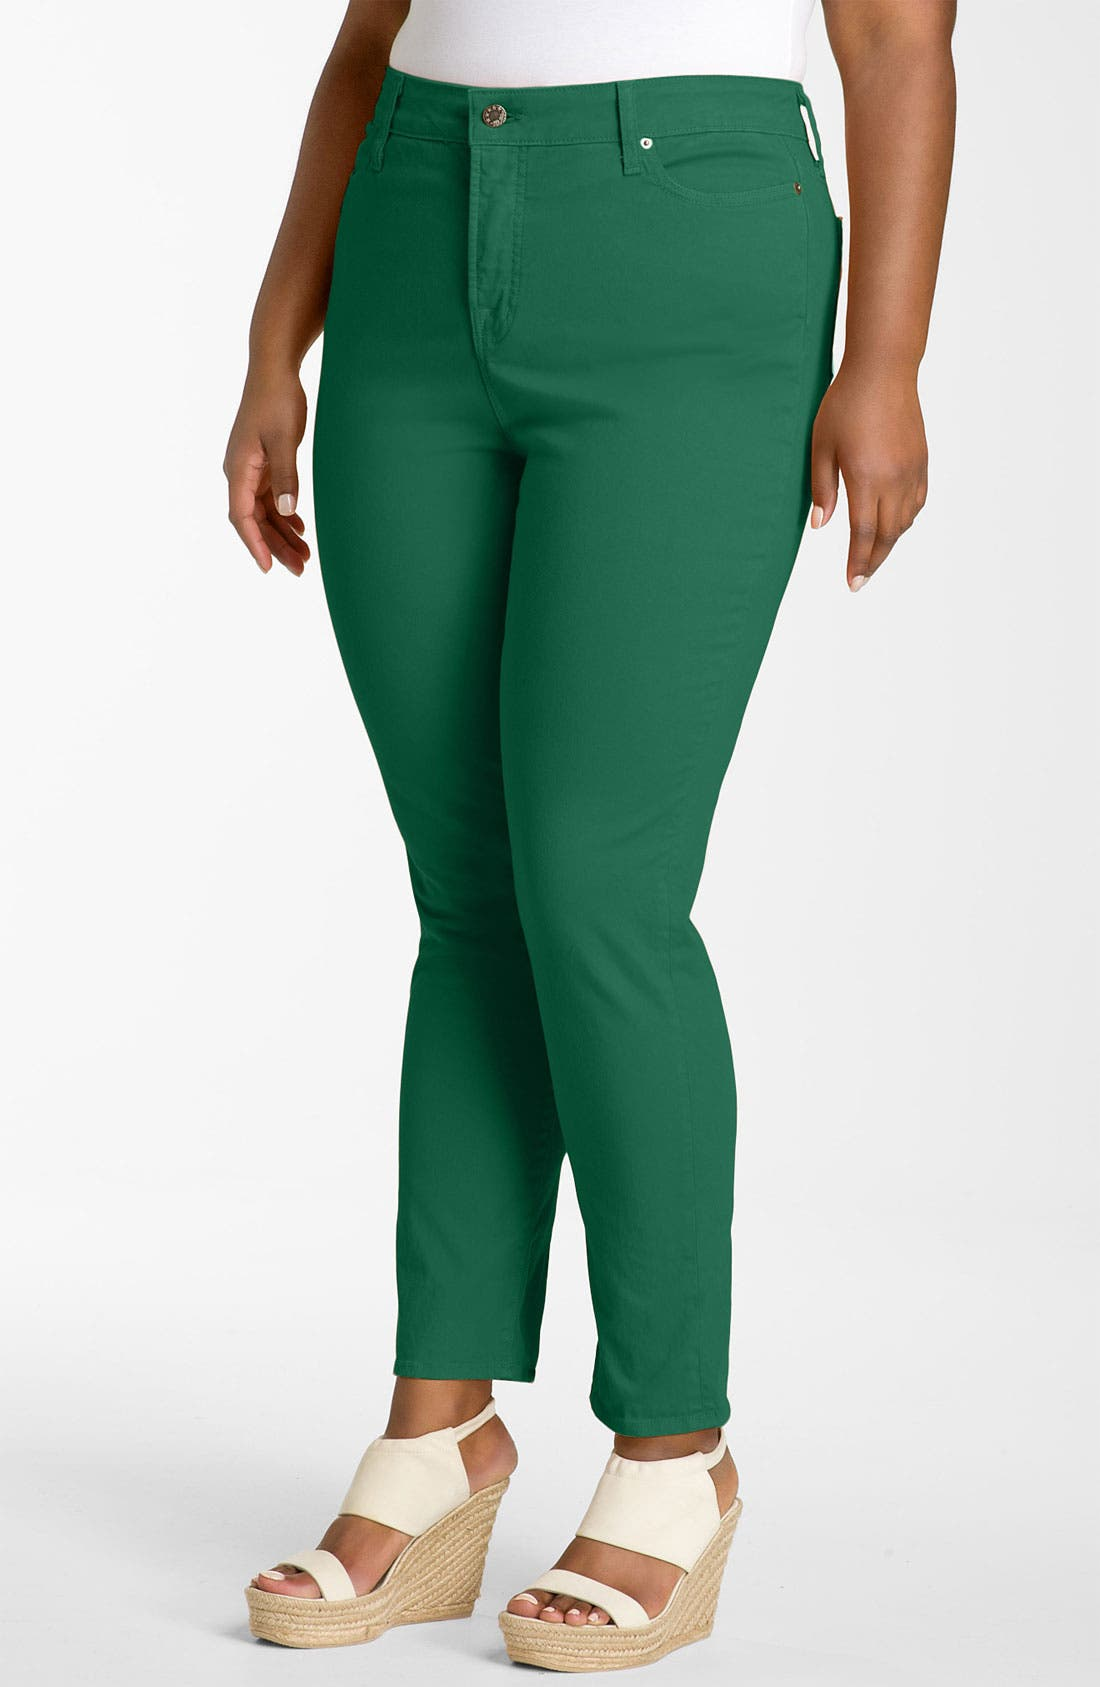 Colored Twill Skinny Jeans,                             Alternate thumbnail 2, color,                             Kelly